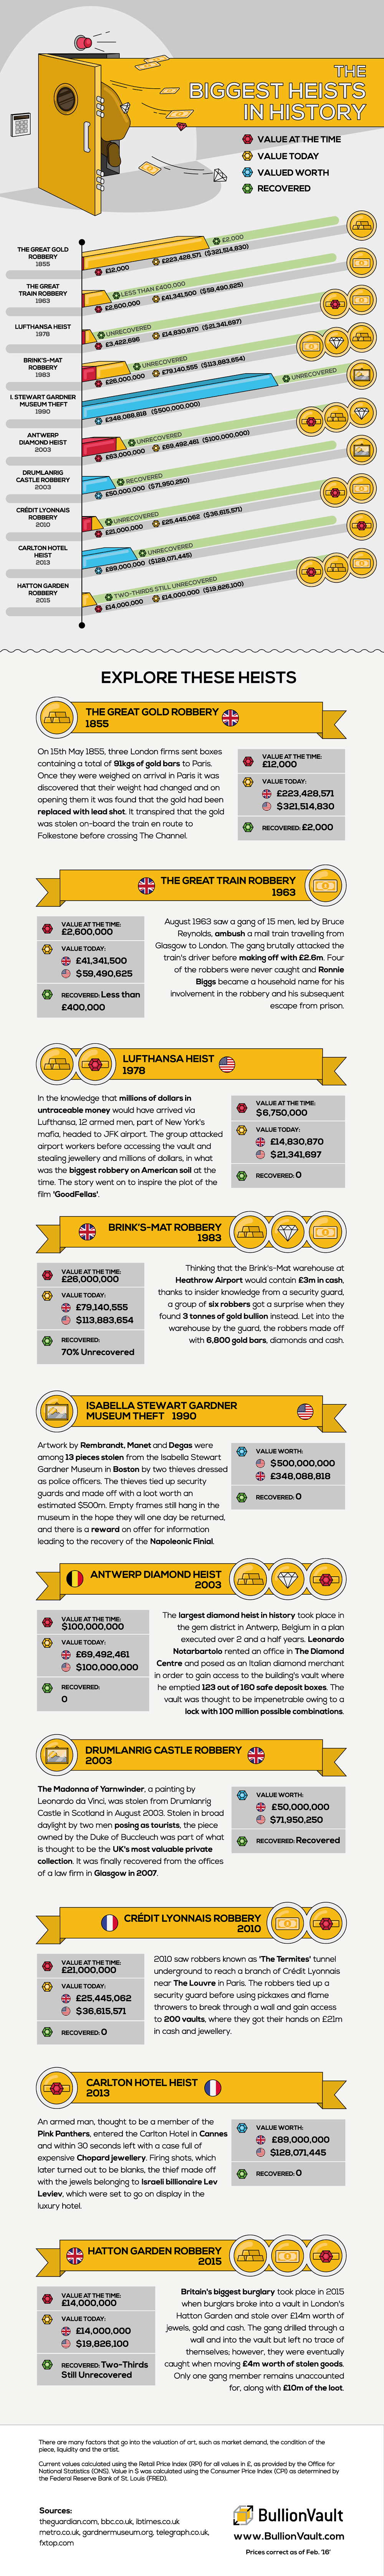 The Biggest Heists in History #Infographic